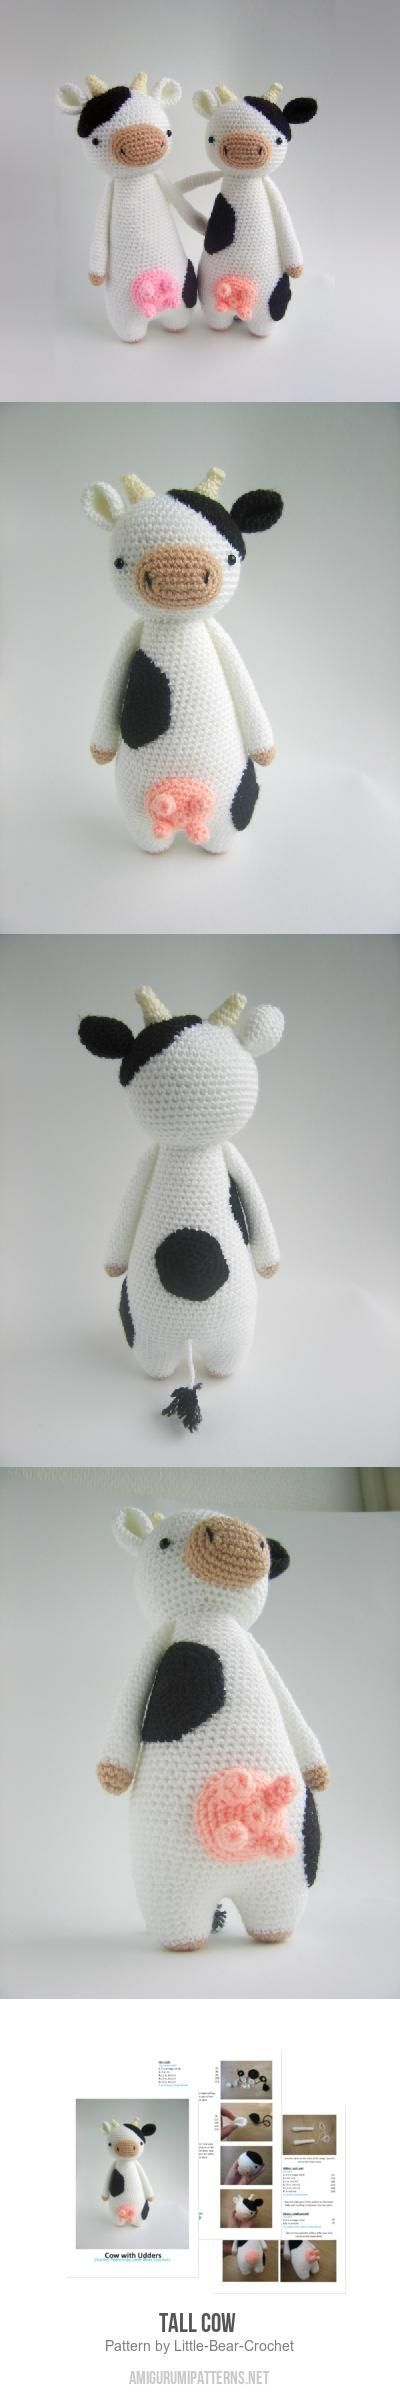 Tall Cow  Amigurumi Pattern